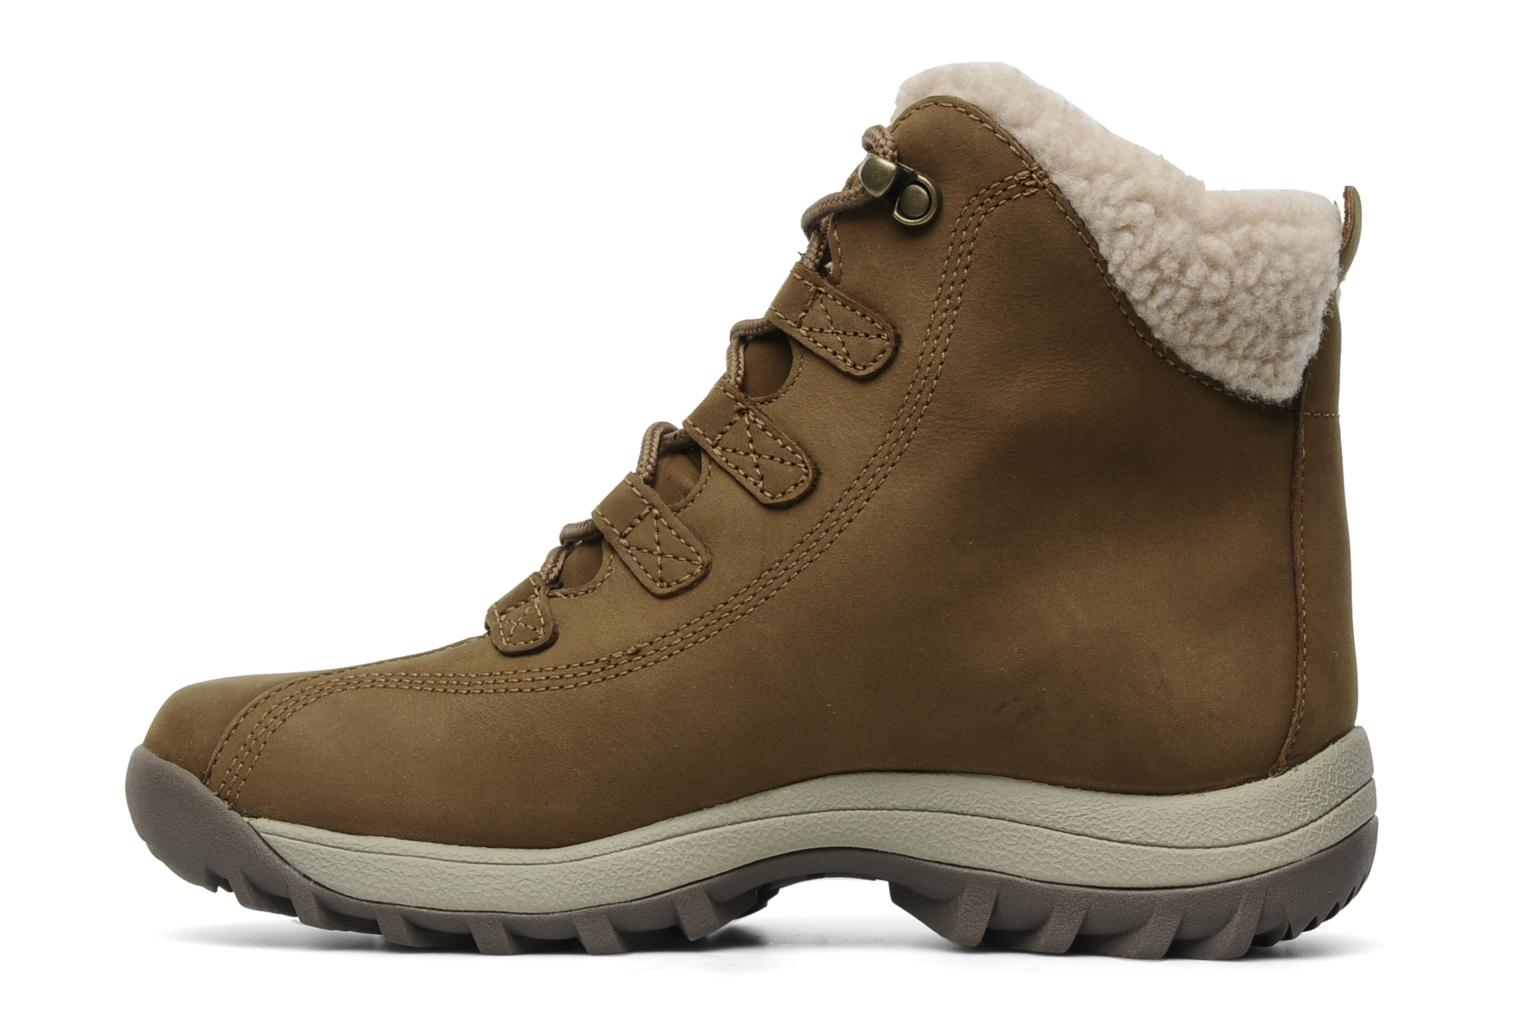 Canard Resort Mid 2.0 WP Boot Taupe